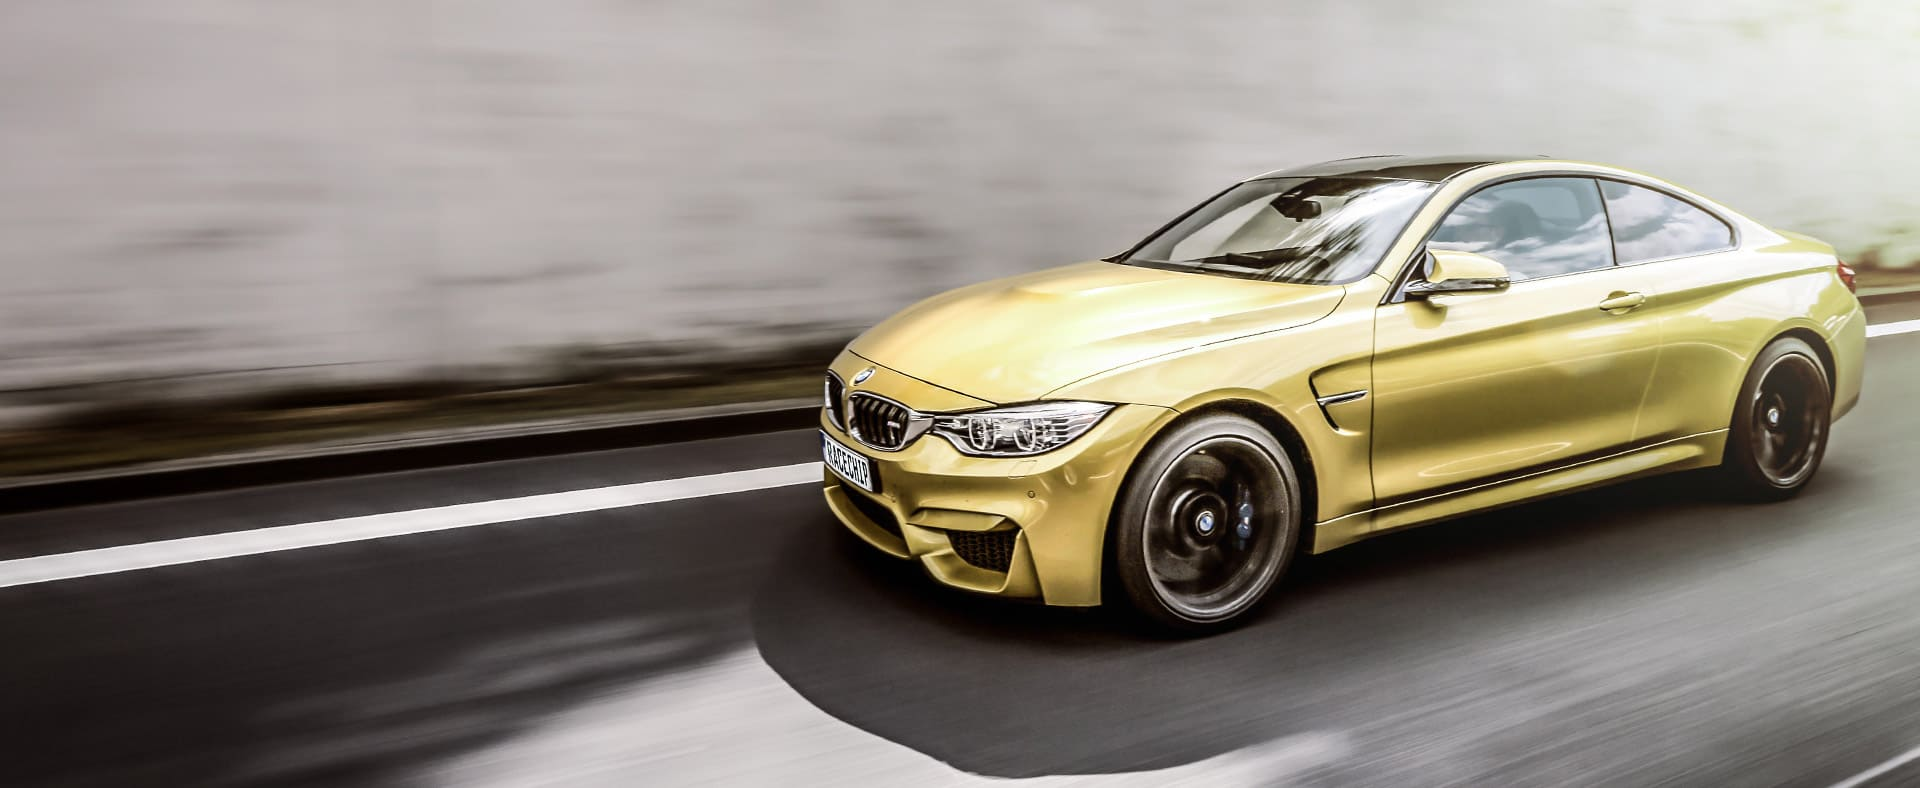 The New Bmw M4 Chiptuning By Racechip